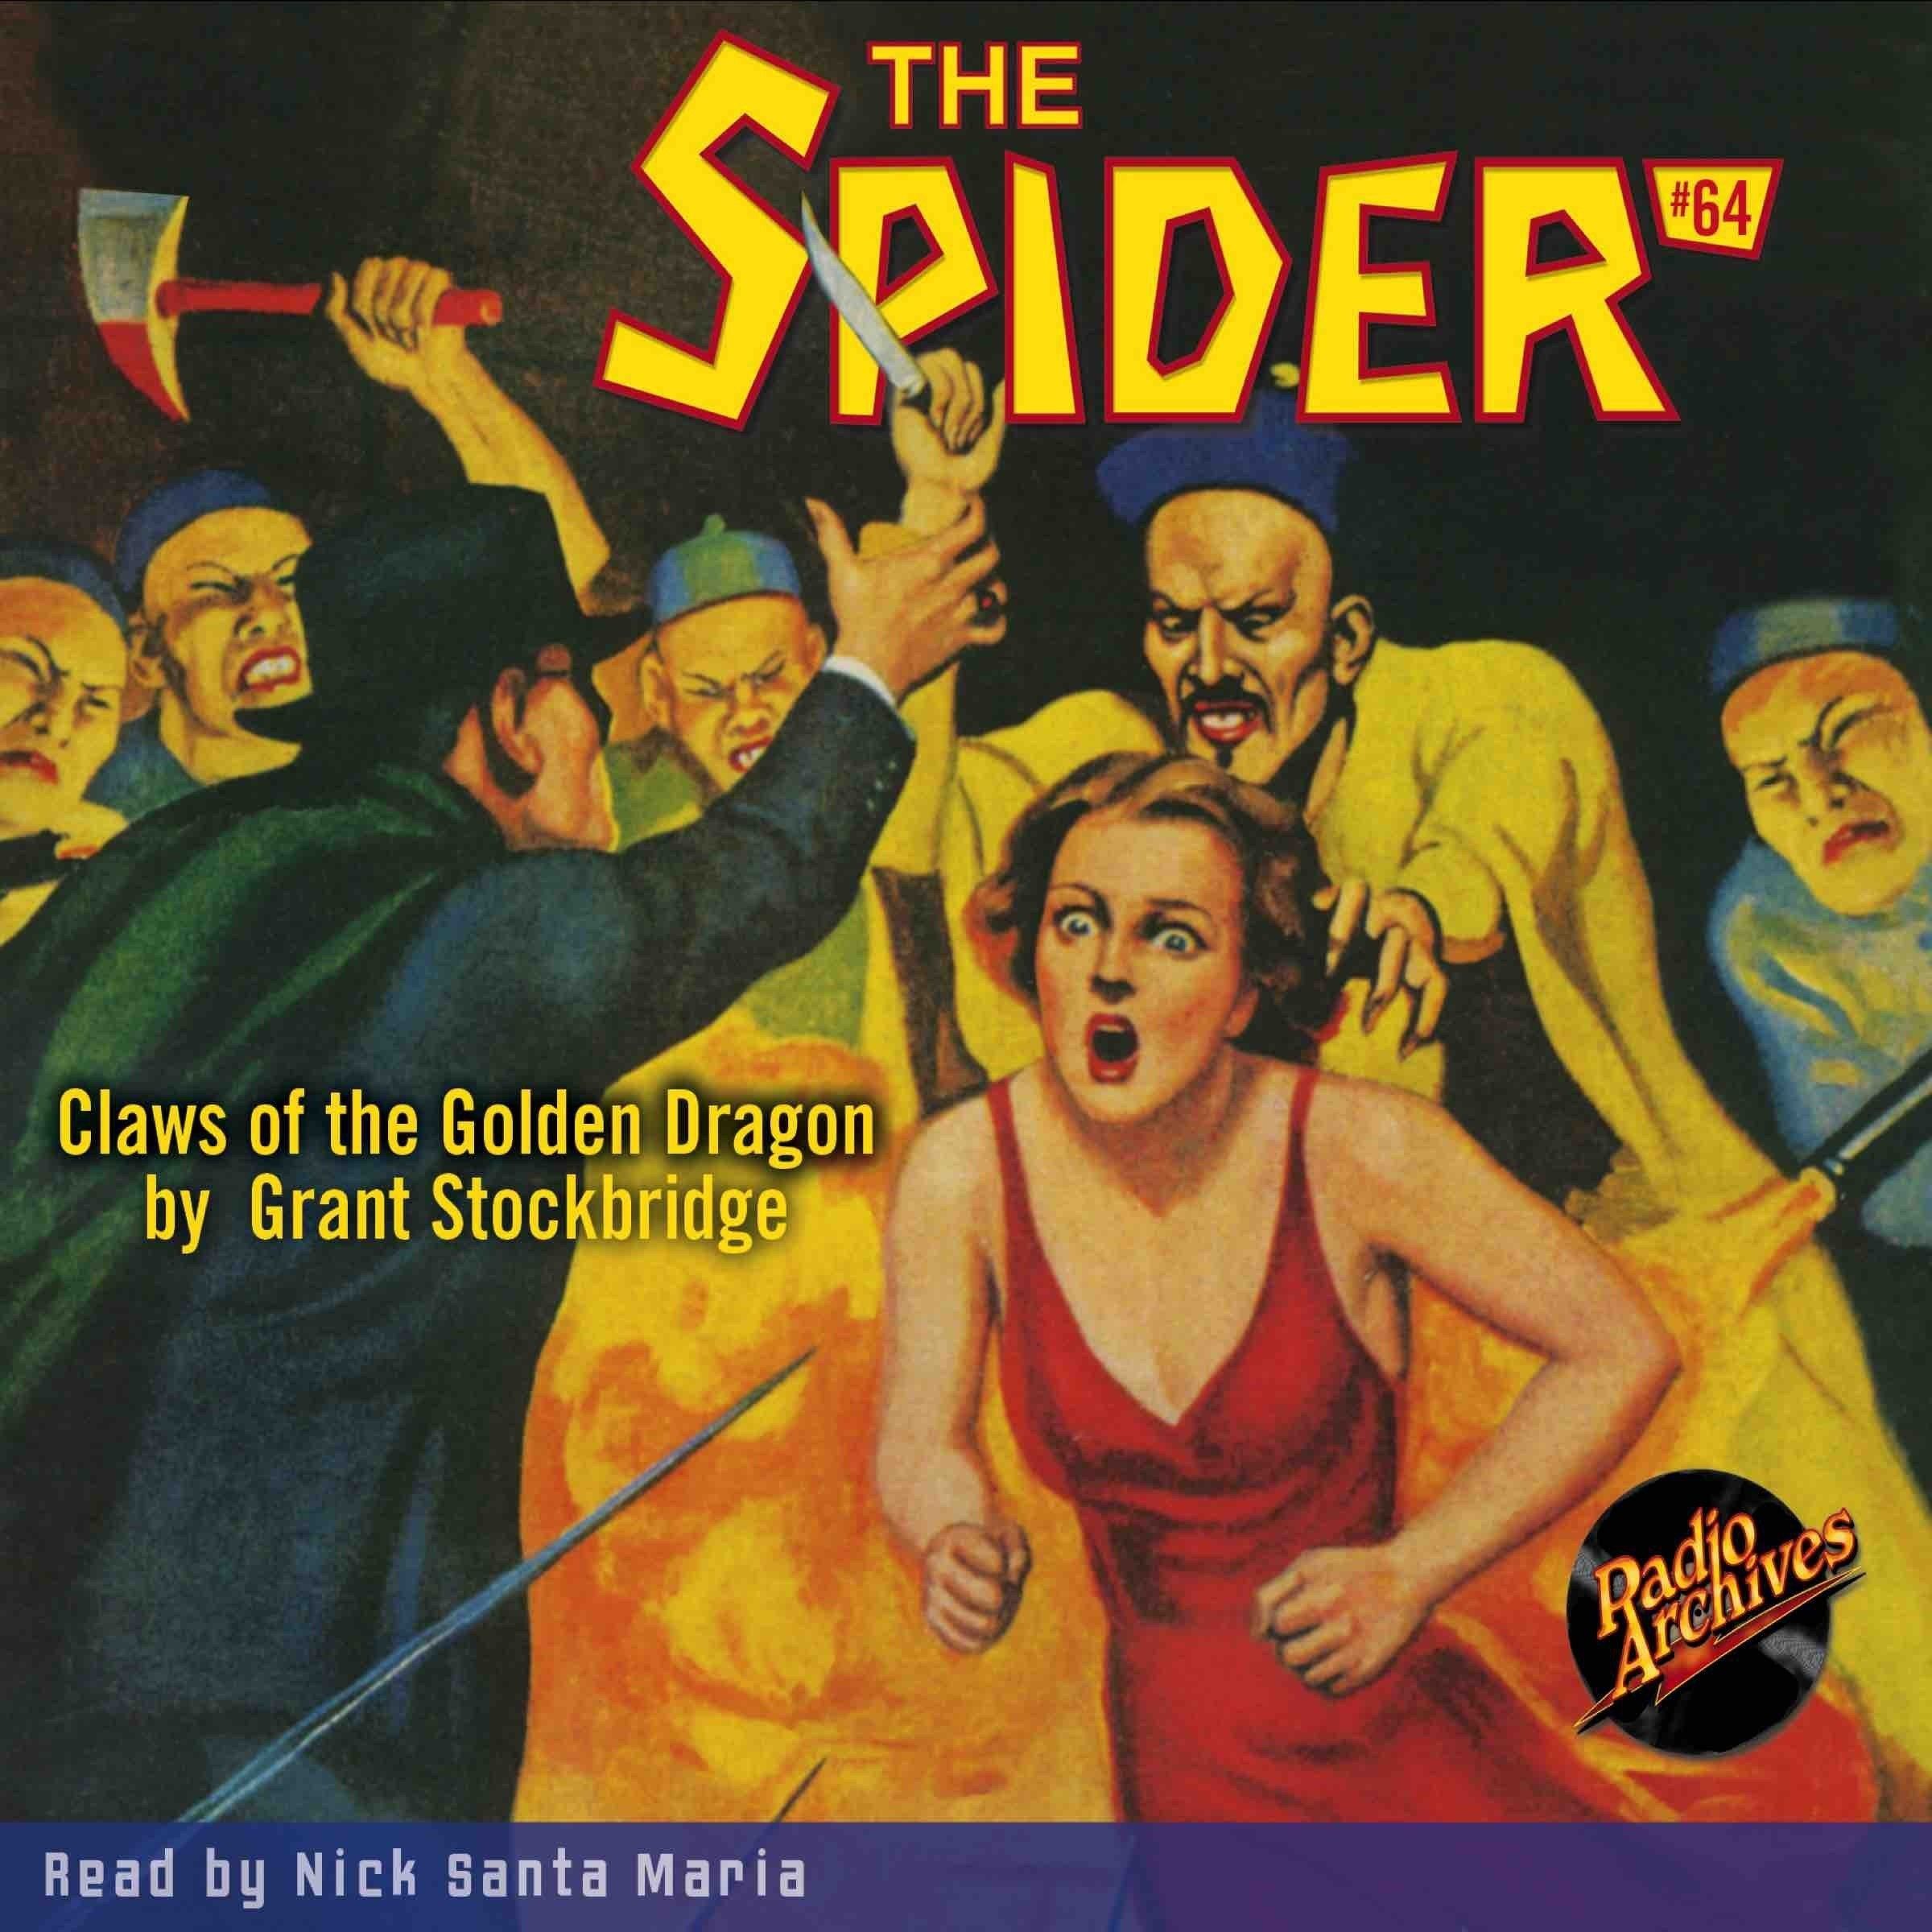 Printable Spider #64, The: Claws of the Golden Dragon Audiobook Cover Art